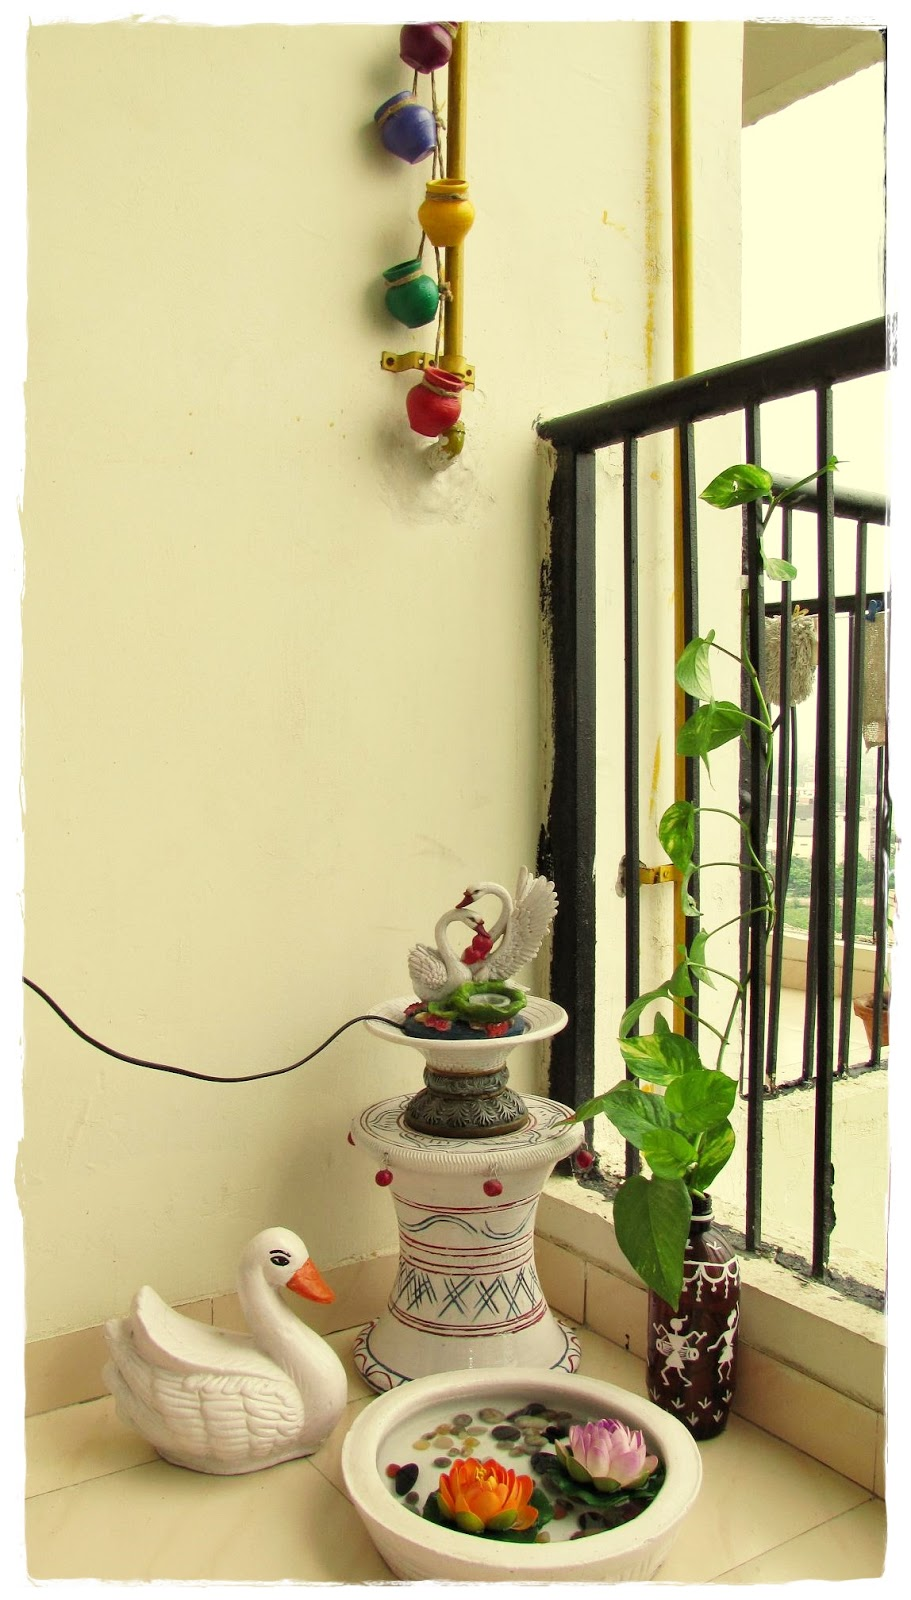 Indian small balcony garden - These Five Hanging Pots Are Just Rabdi Handis Which I Have Painted They Look So Vibrant And Enhance The Beauty Of Her Small Balcony Garden